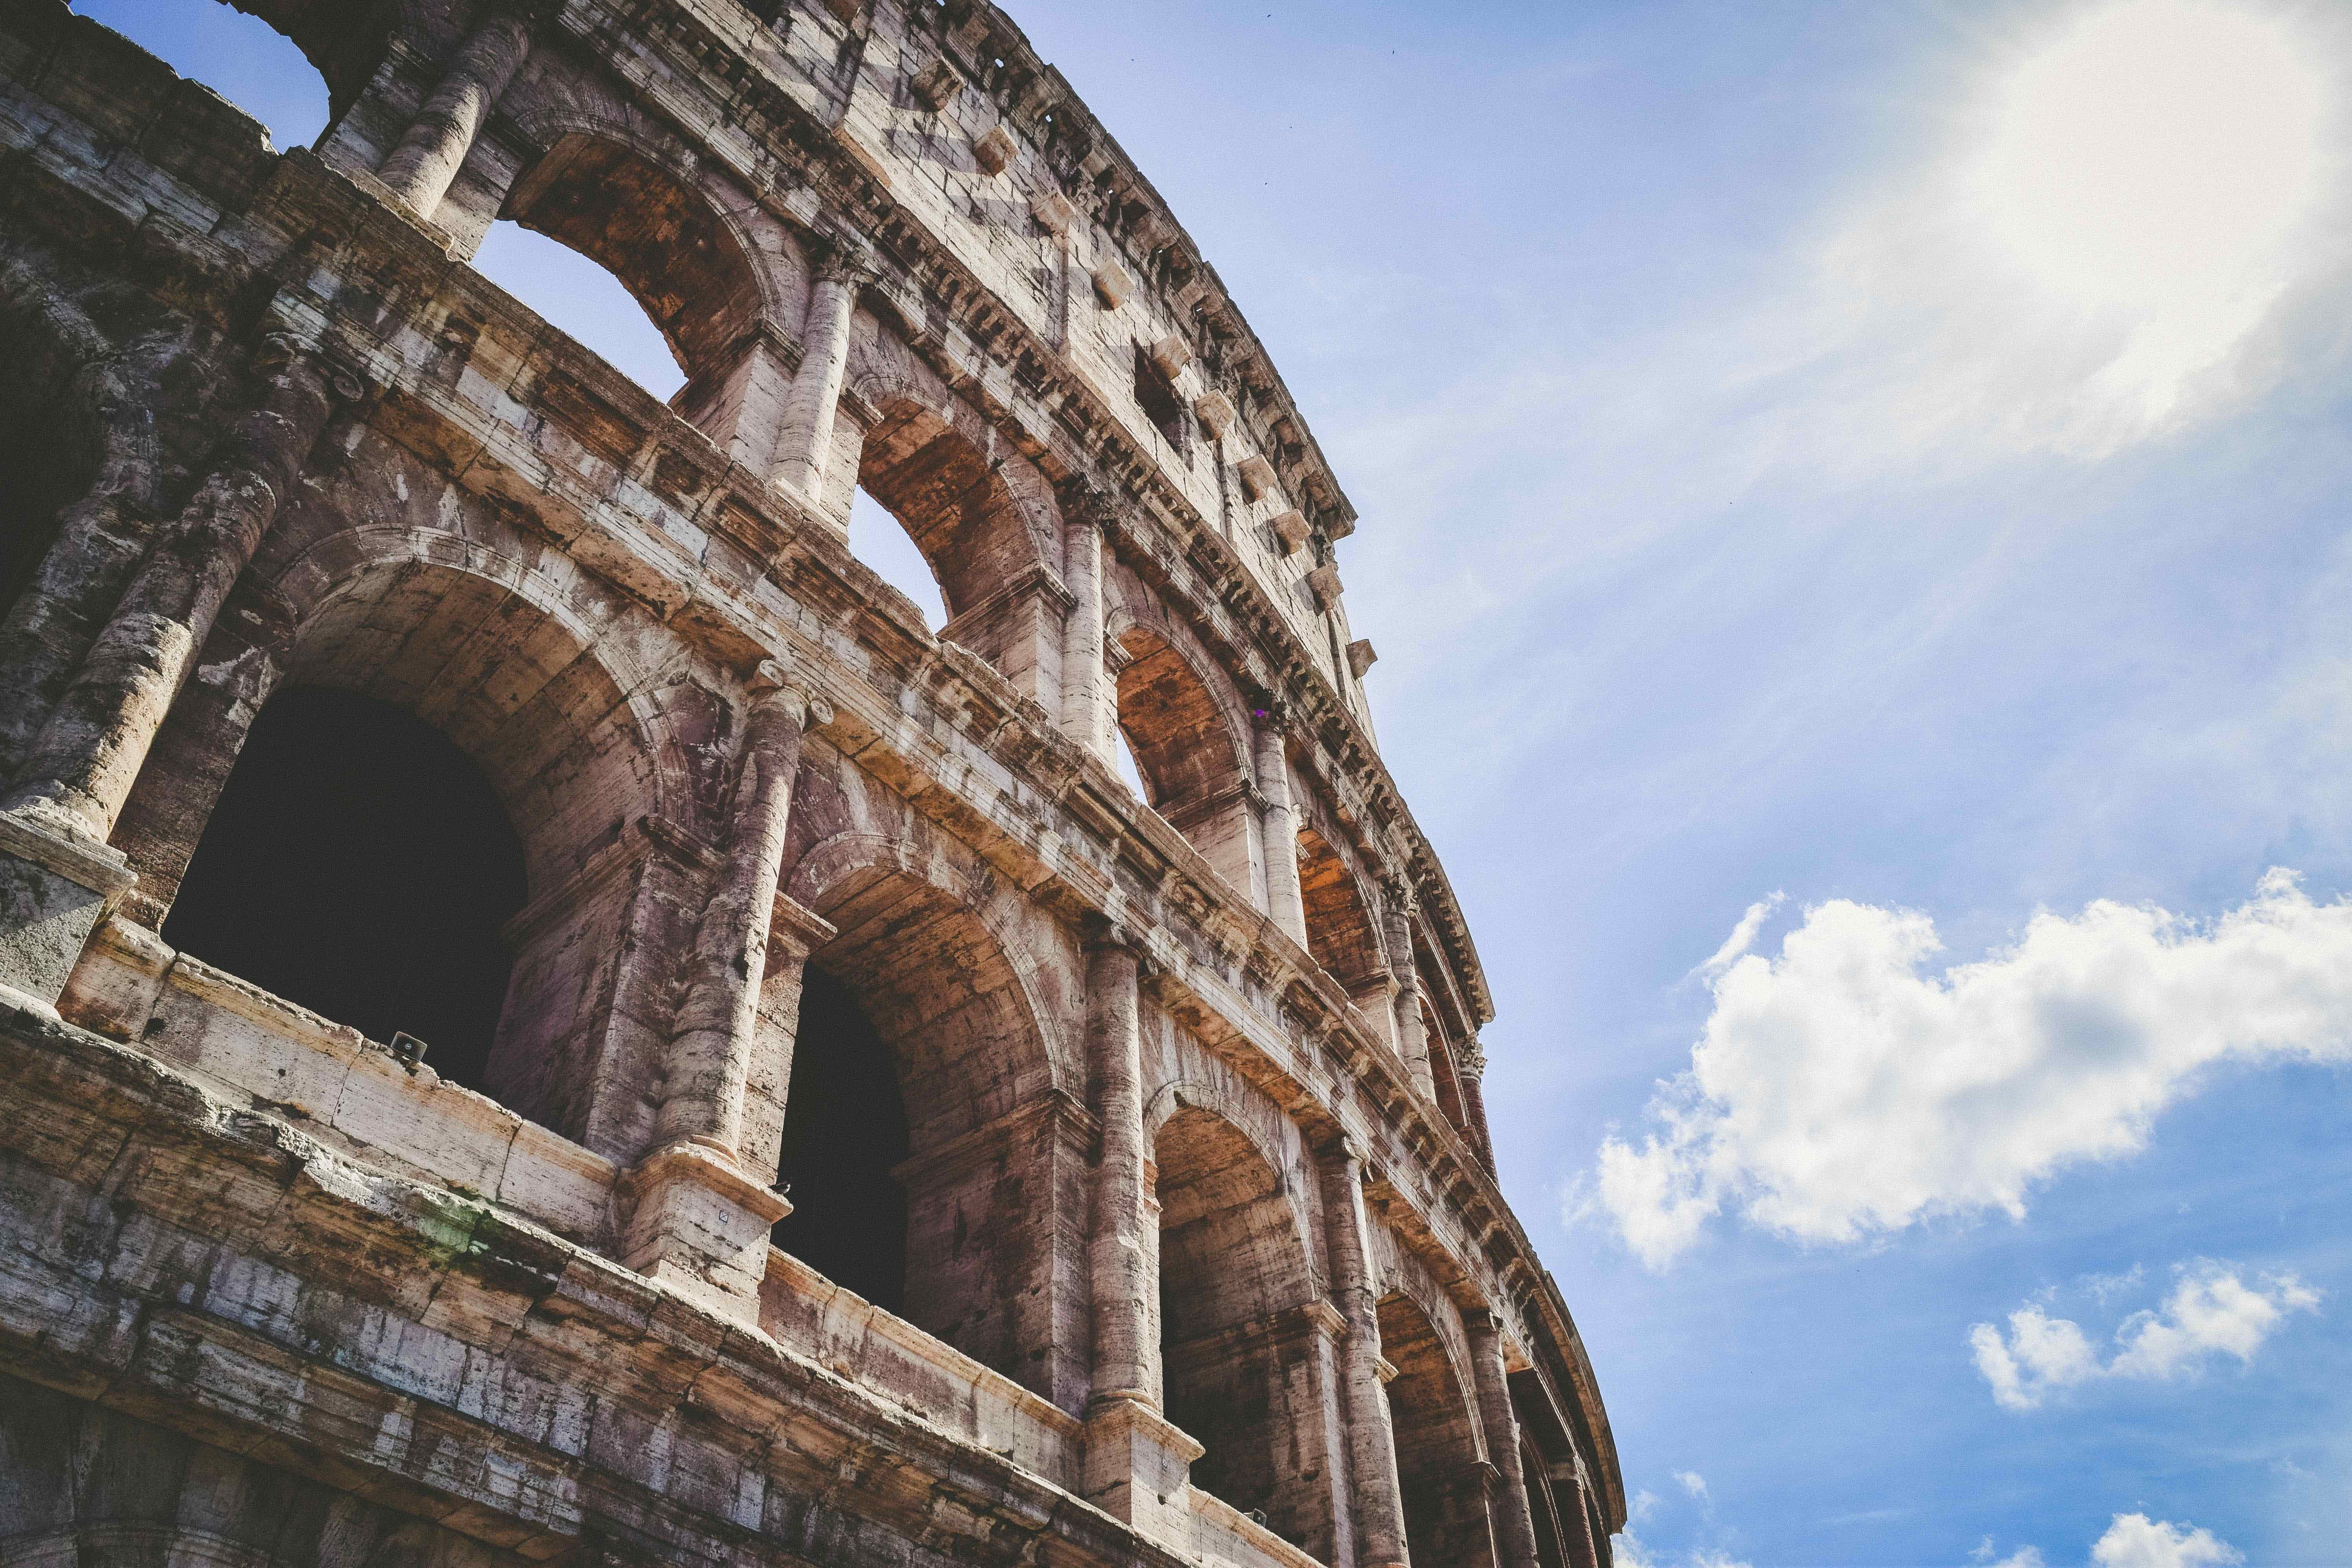 3- Day Itinerary for the Perfect Roman Holiday